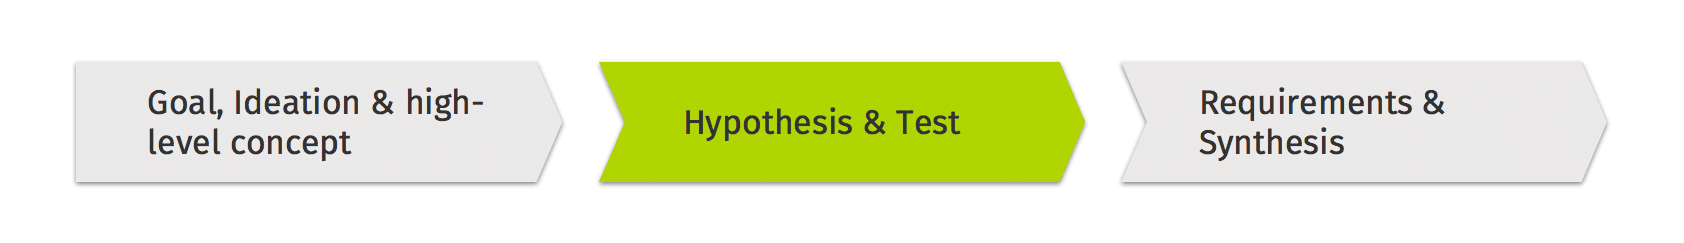 Phase 2 of your Product Discovery: Hypothesis & Test